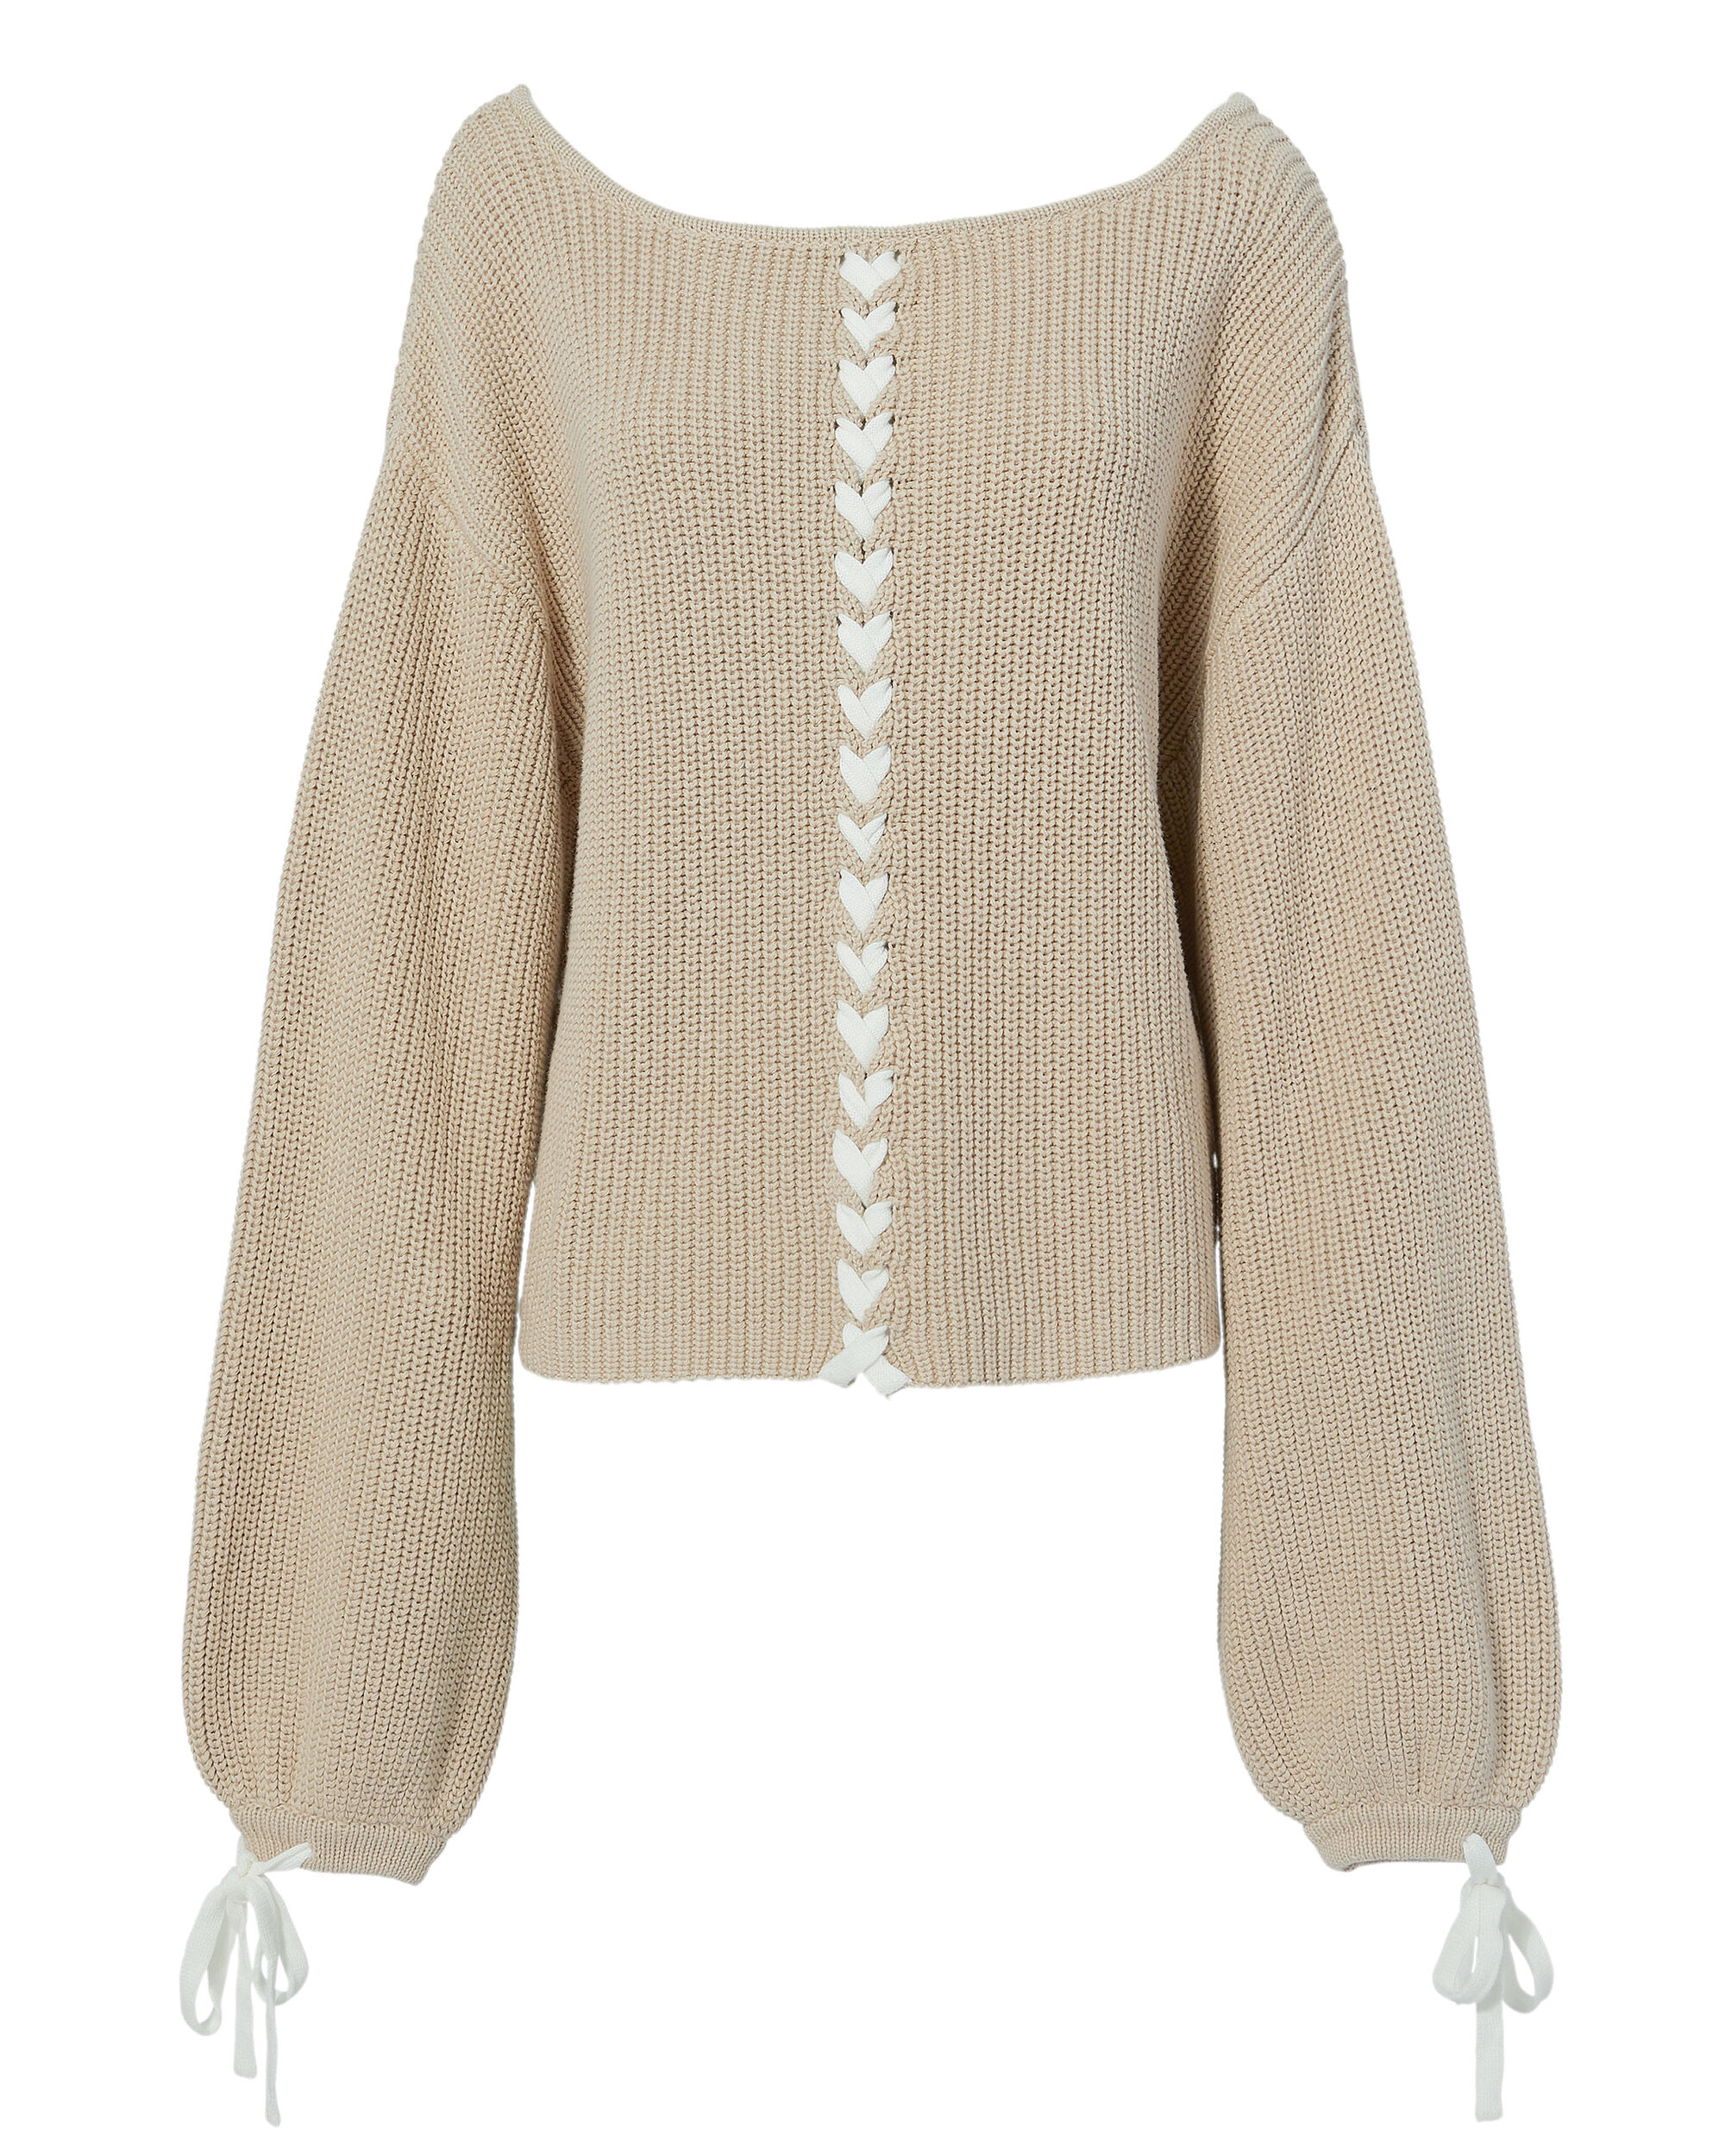 Pama Lace-Up Sweater, BEIGE, hi-res